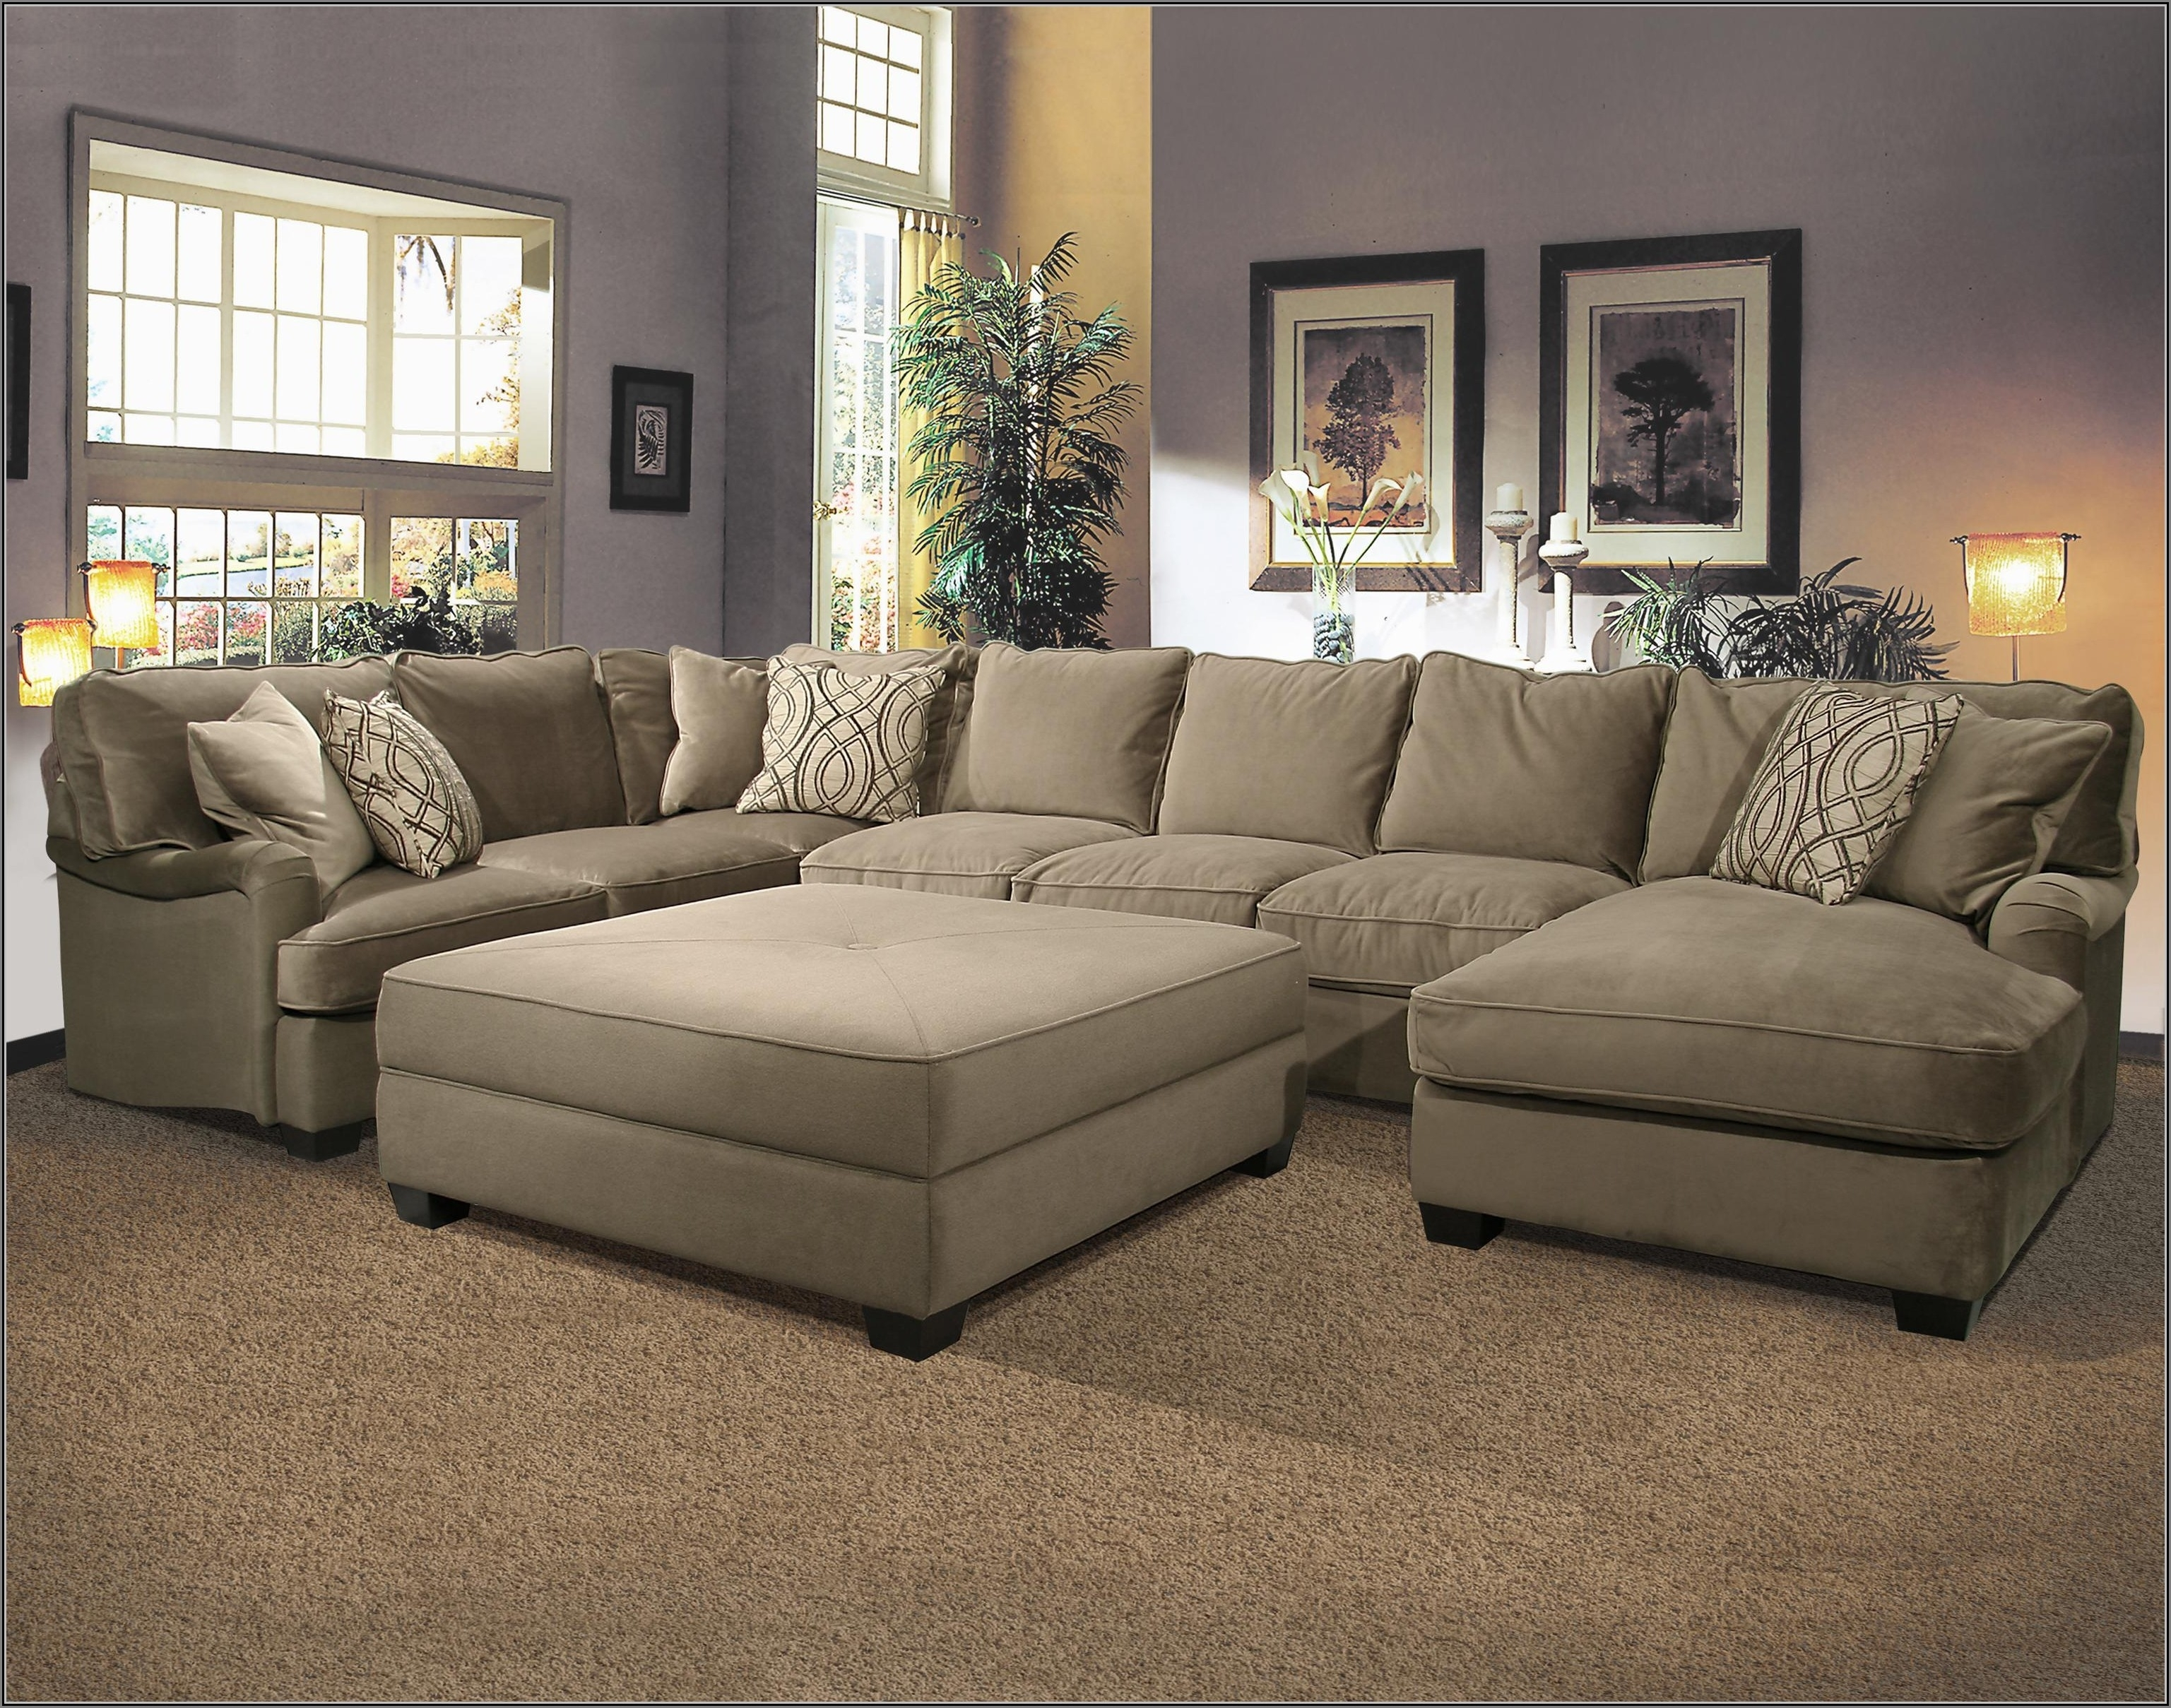 Sofa Extra Large Sectional With Chaise And Ottoman U Shaped Bedroom With Regard To Huge U Shaped Sectionals (View 3 of 10)